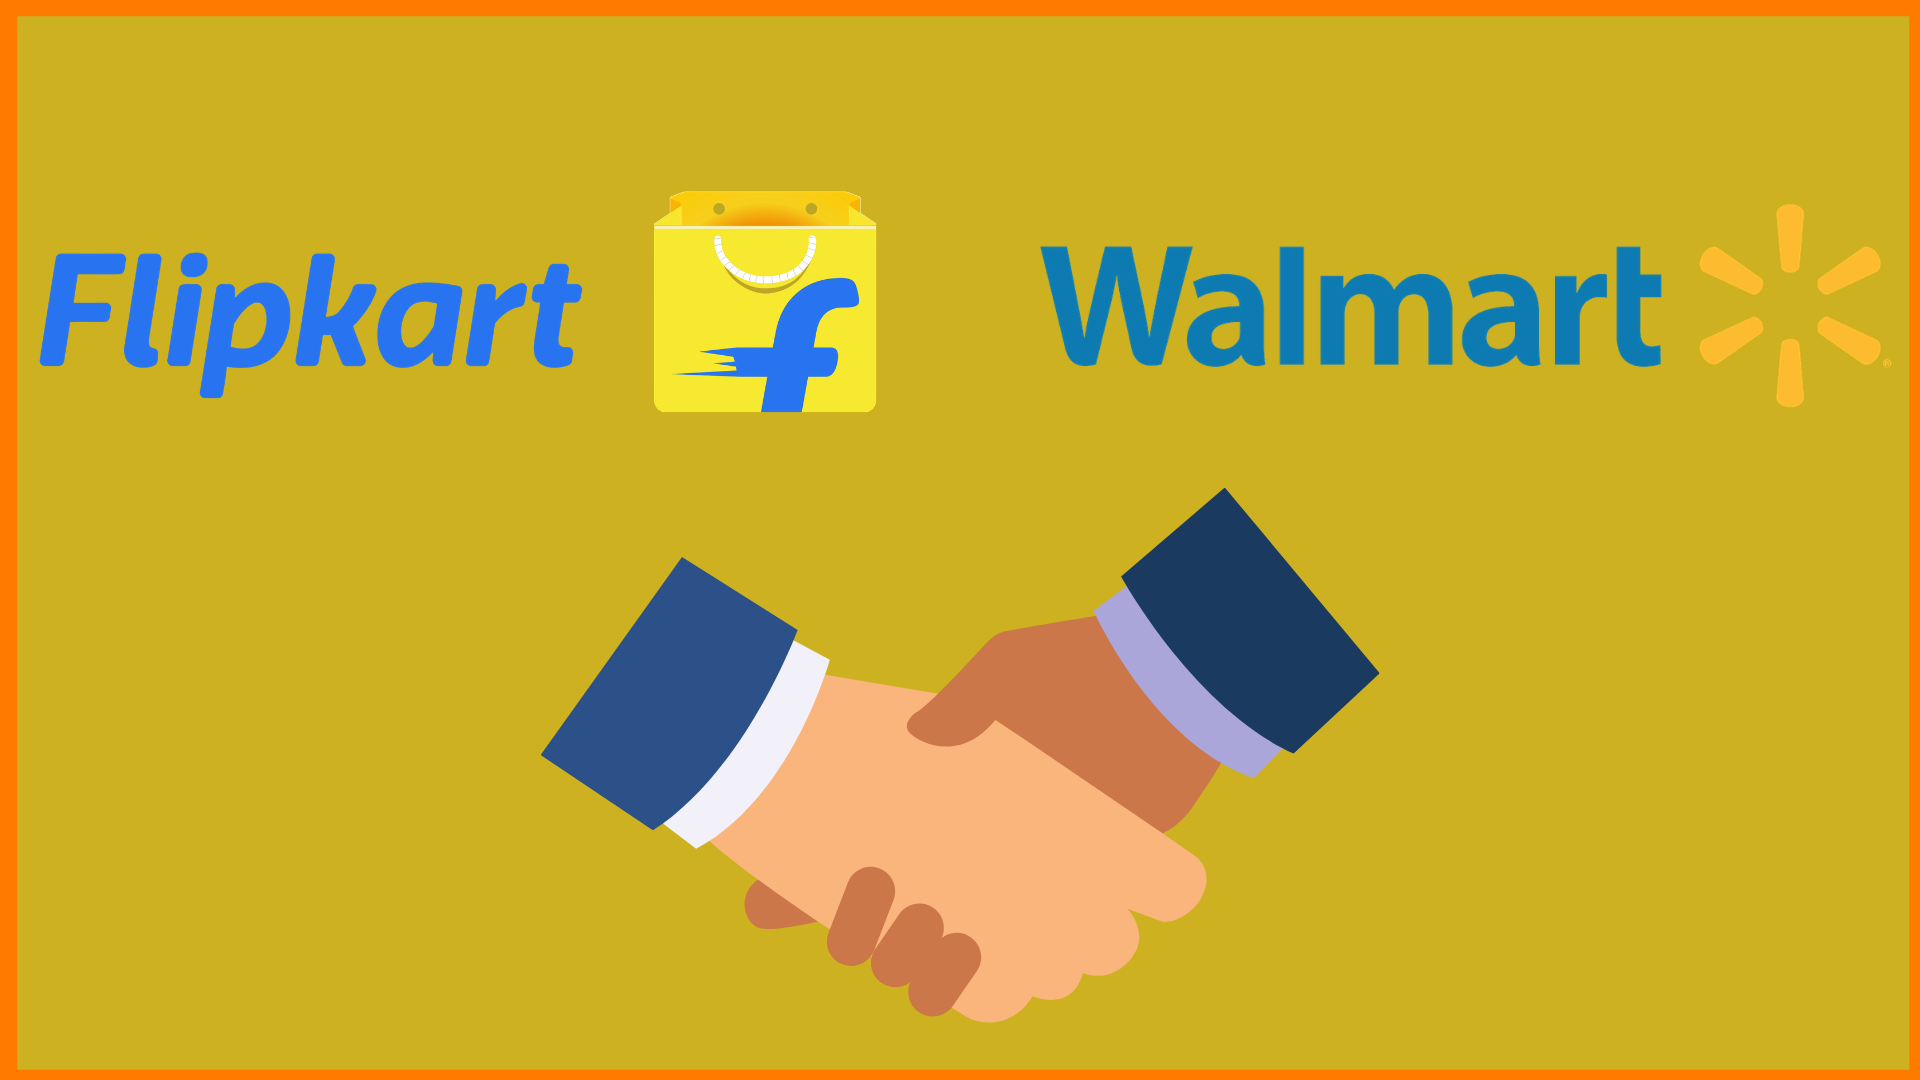 Flipkart and Walmart Logo